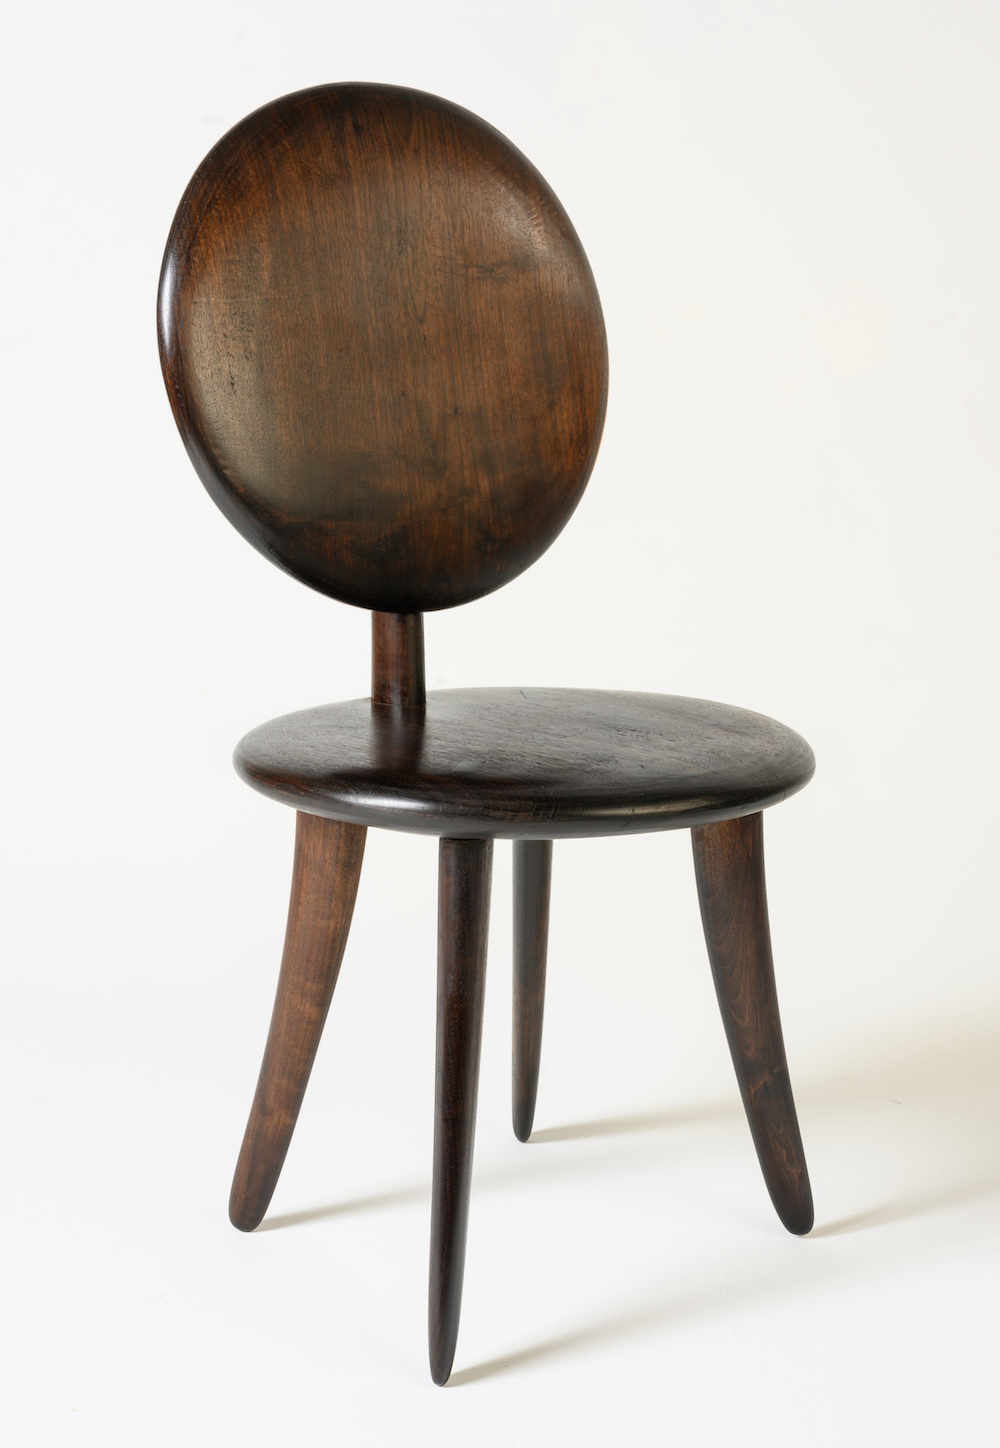 angled view of Willa's Chair by artist Christopher Kurtz